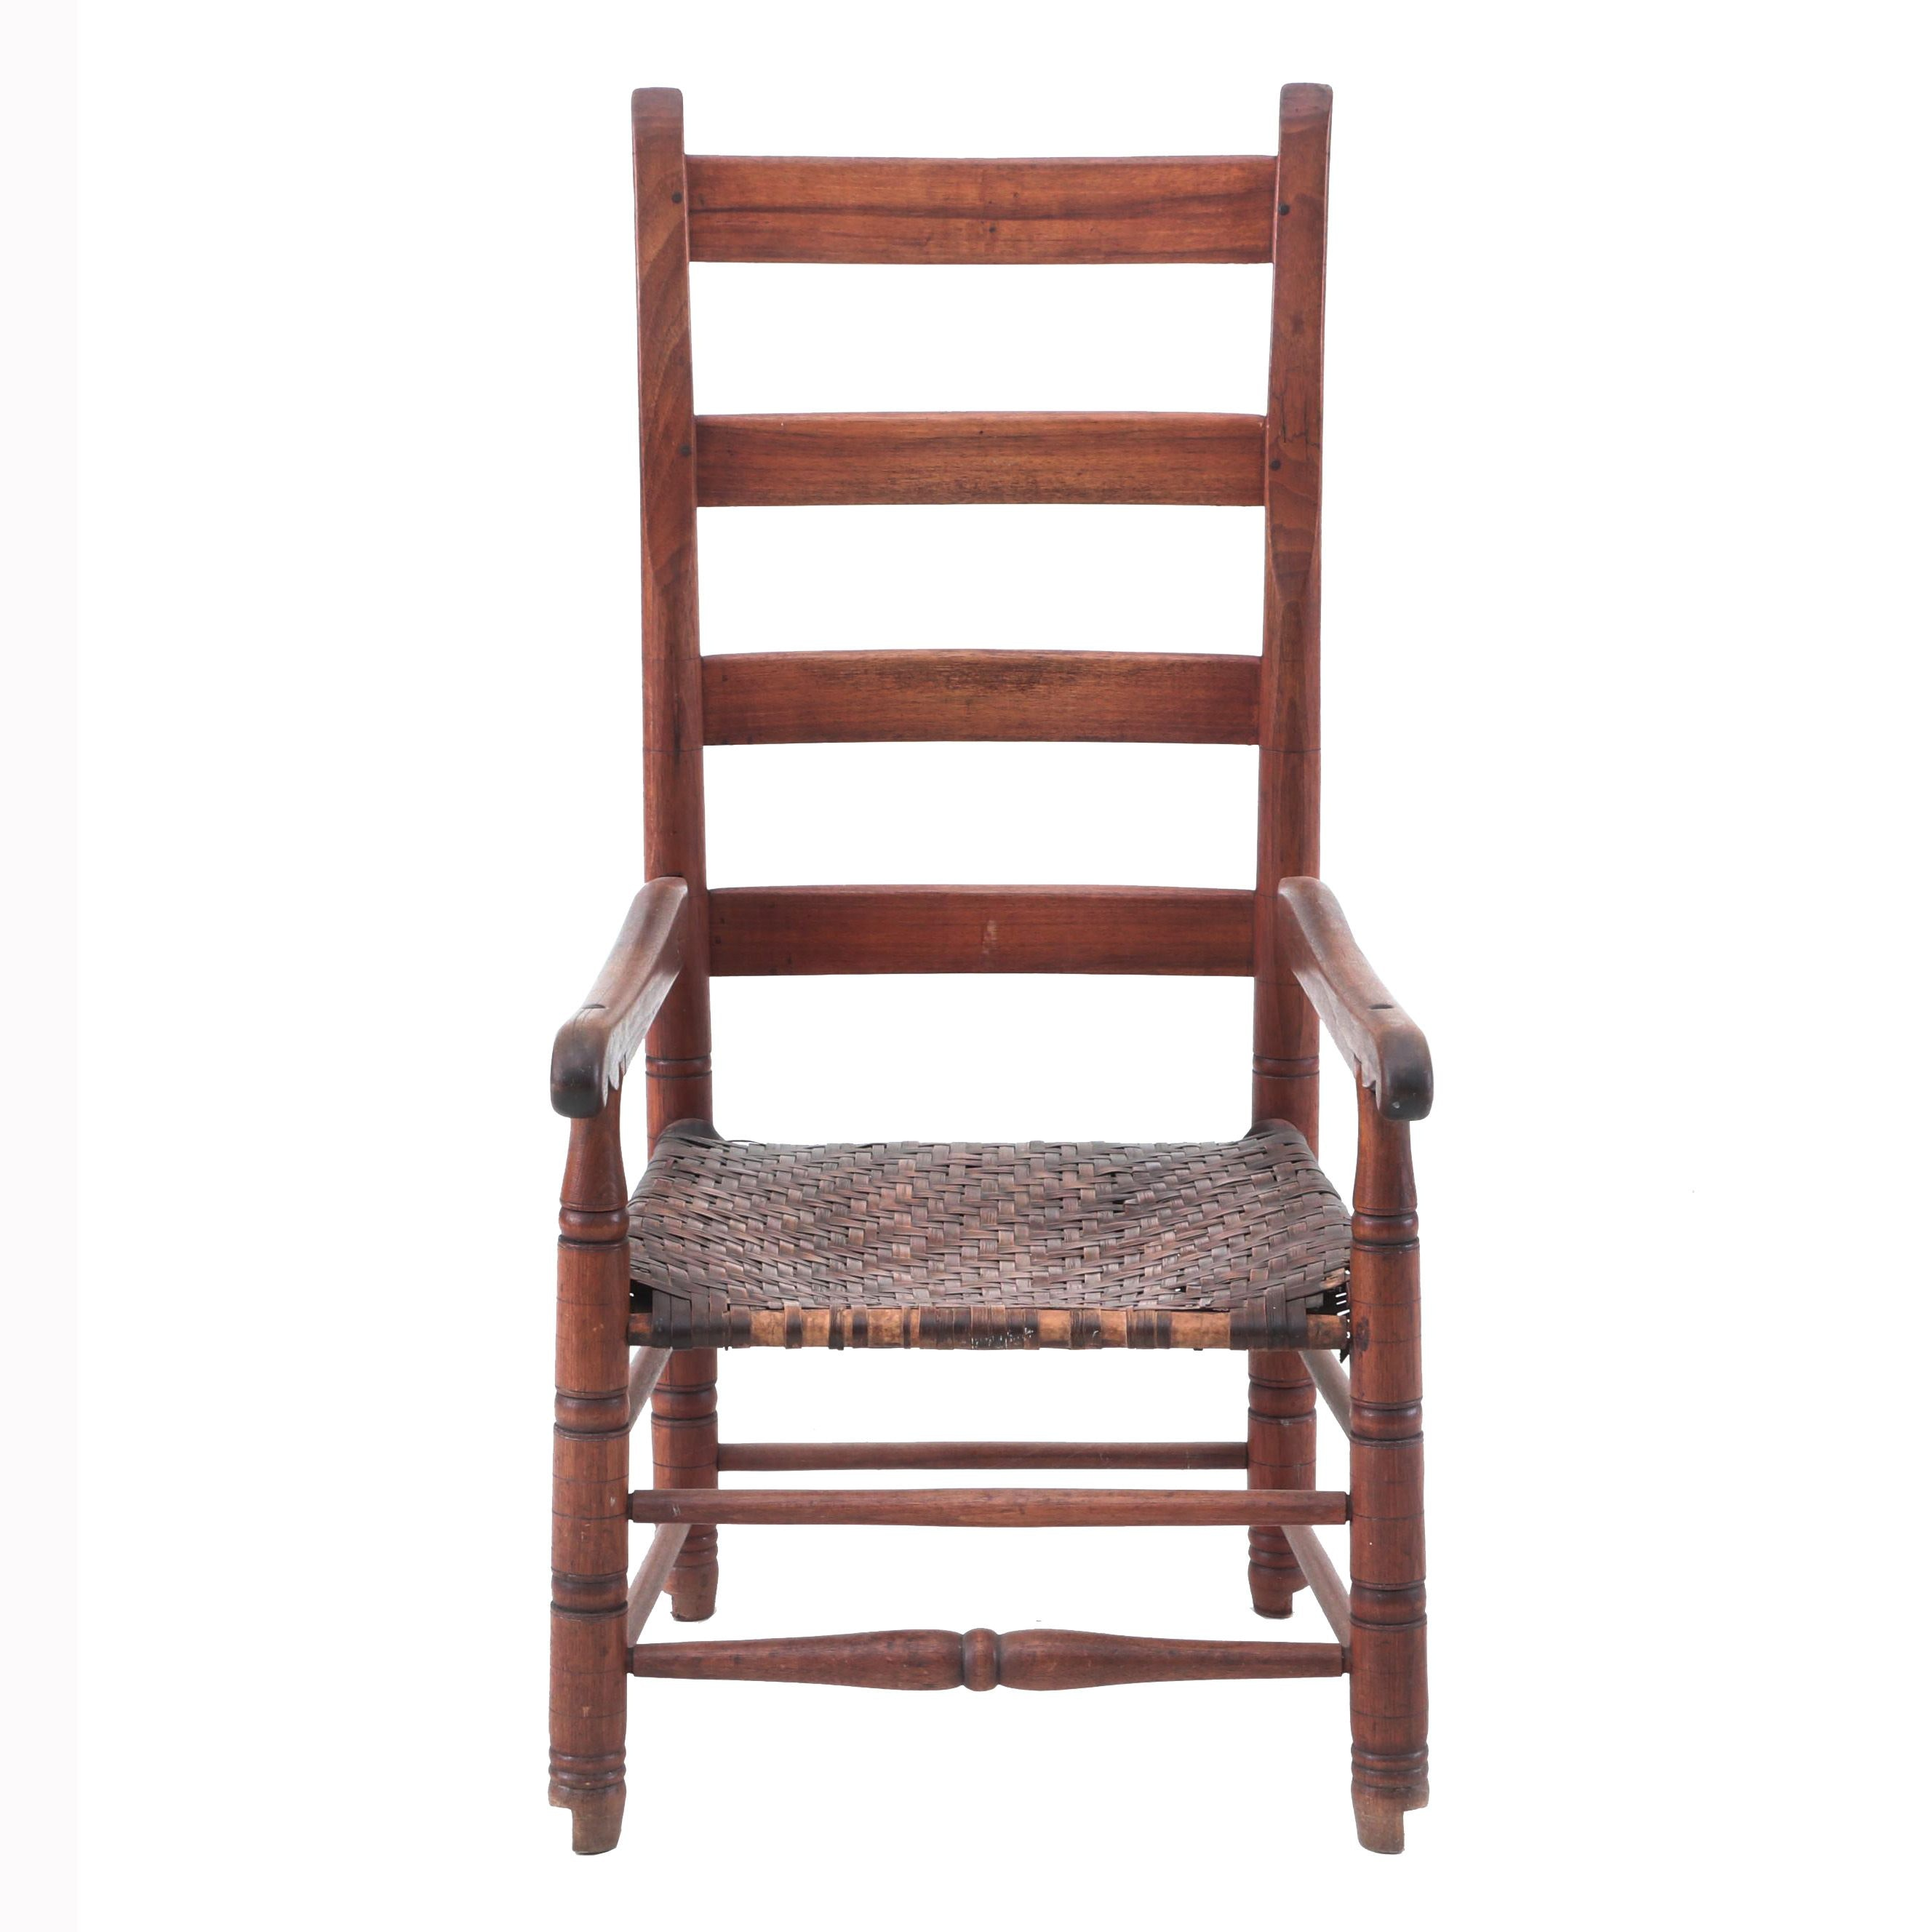 19th Century Ladder-Back Chair